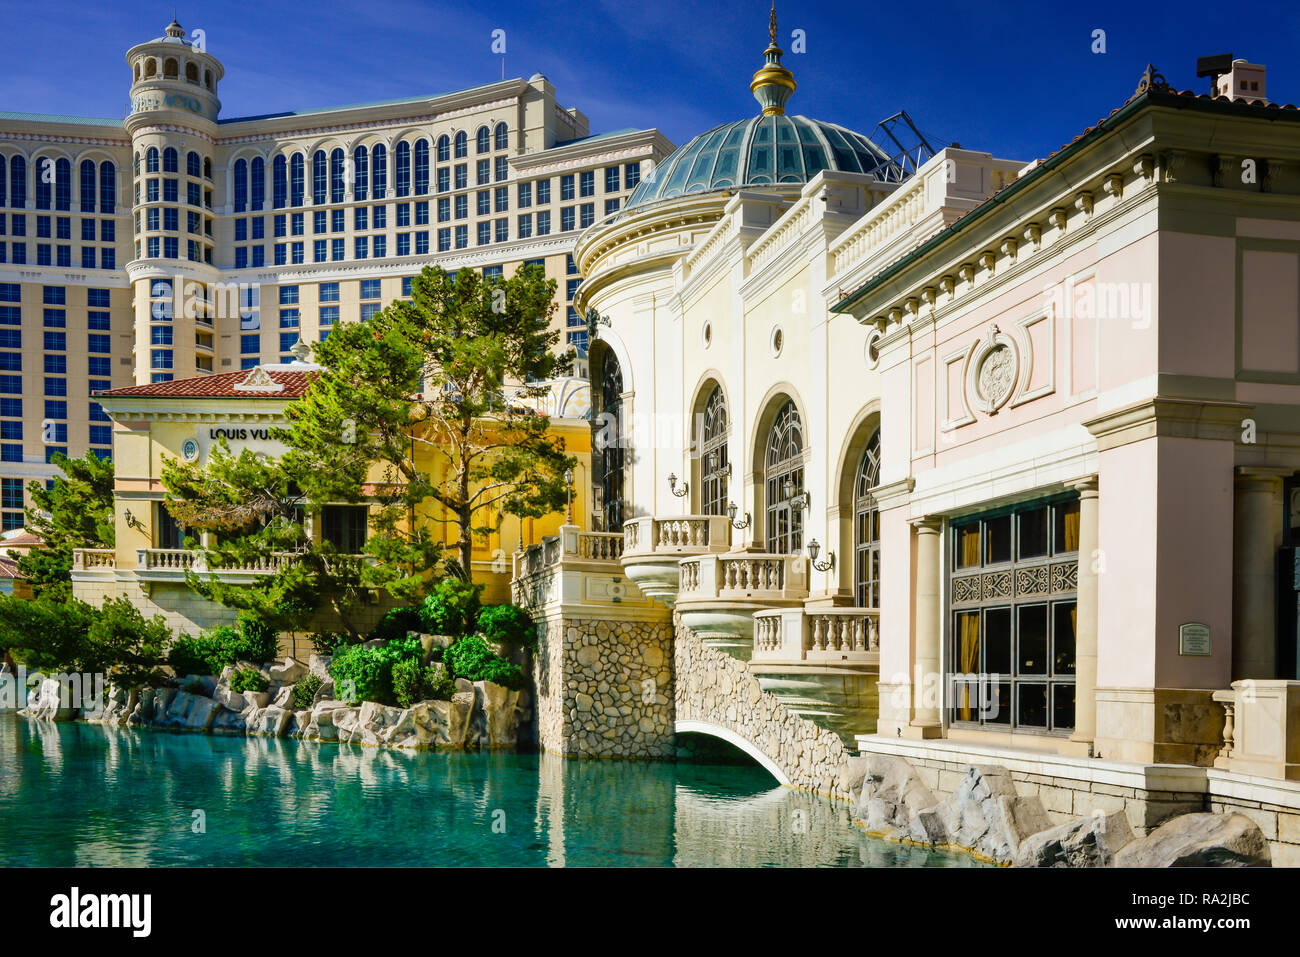 The Bellagio Casino and Hotel in the background with the Beautiful architectural details of the Forum Shops mall complex in Las Vegas, NV Stock Photo